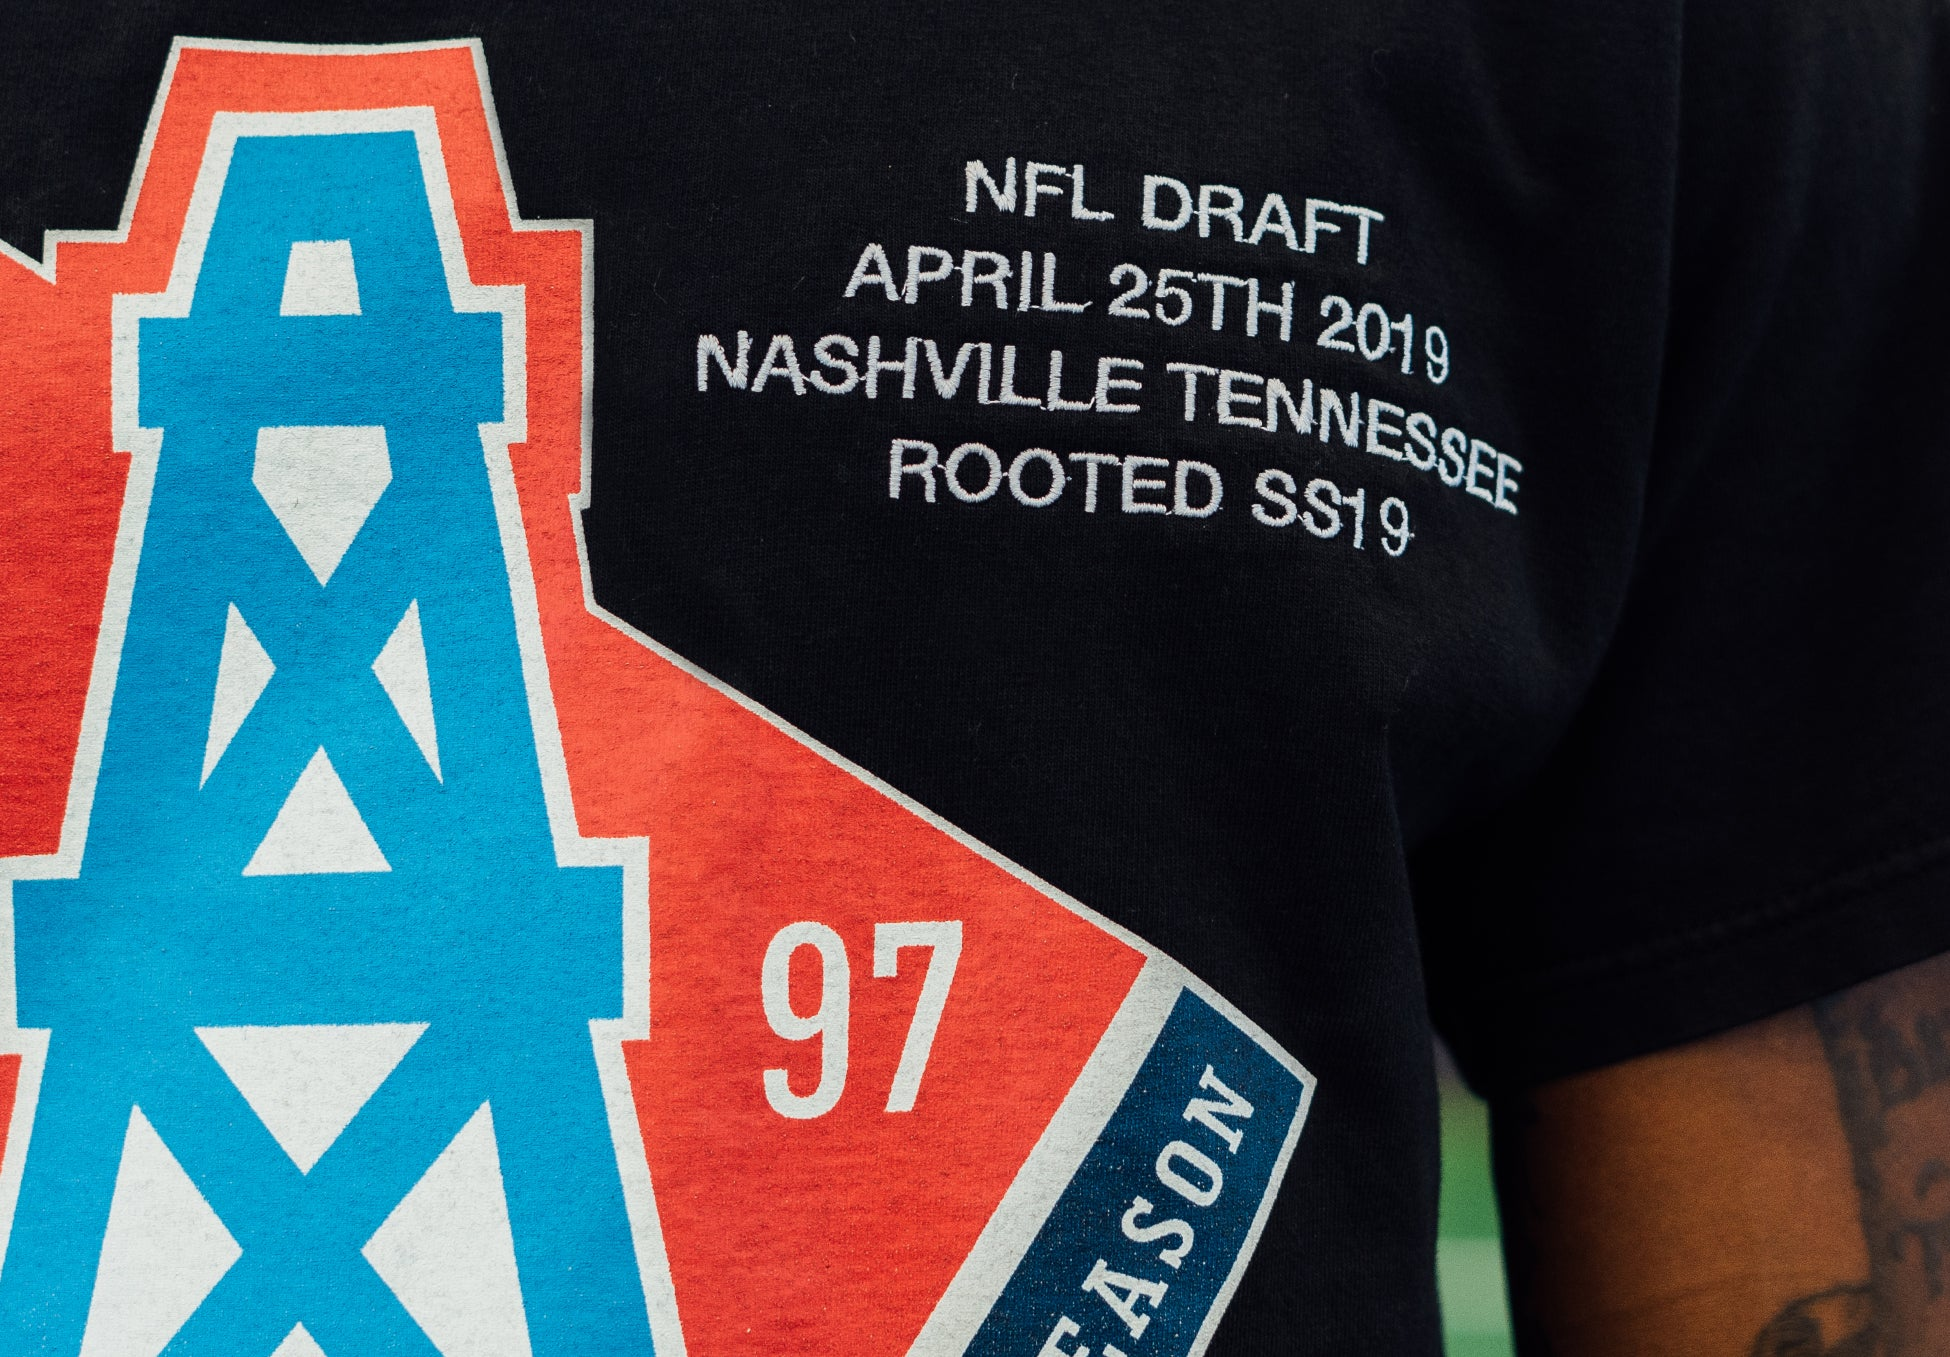 The-NFL-Draft-2019-Nashville-Tennessee-Rooted-Titans-Oilers